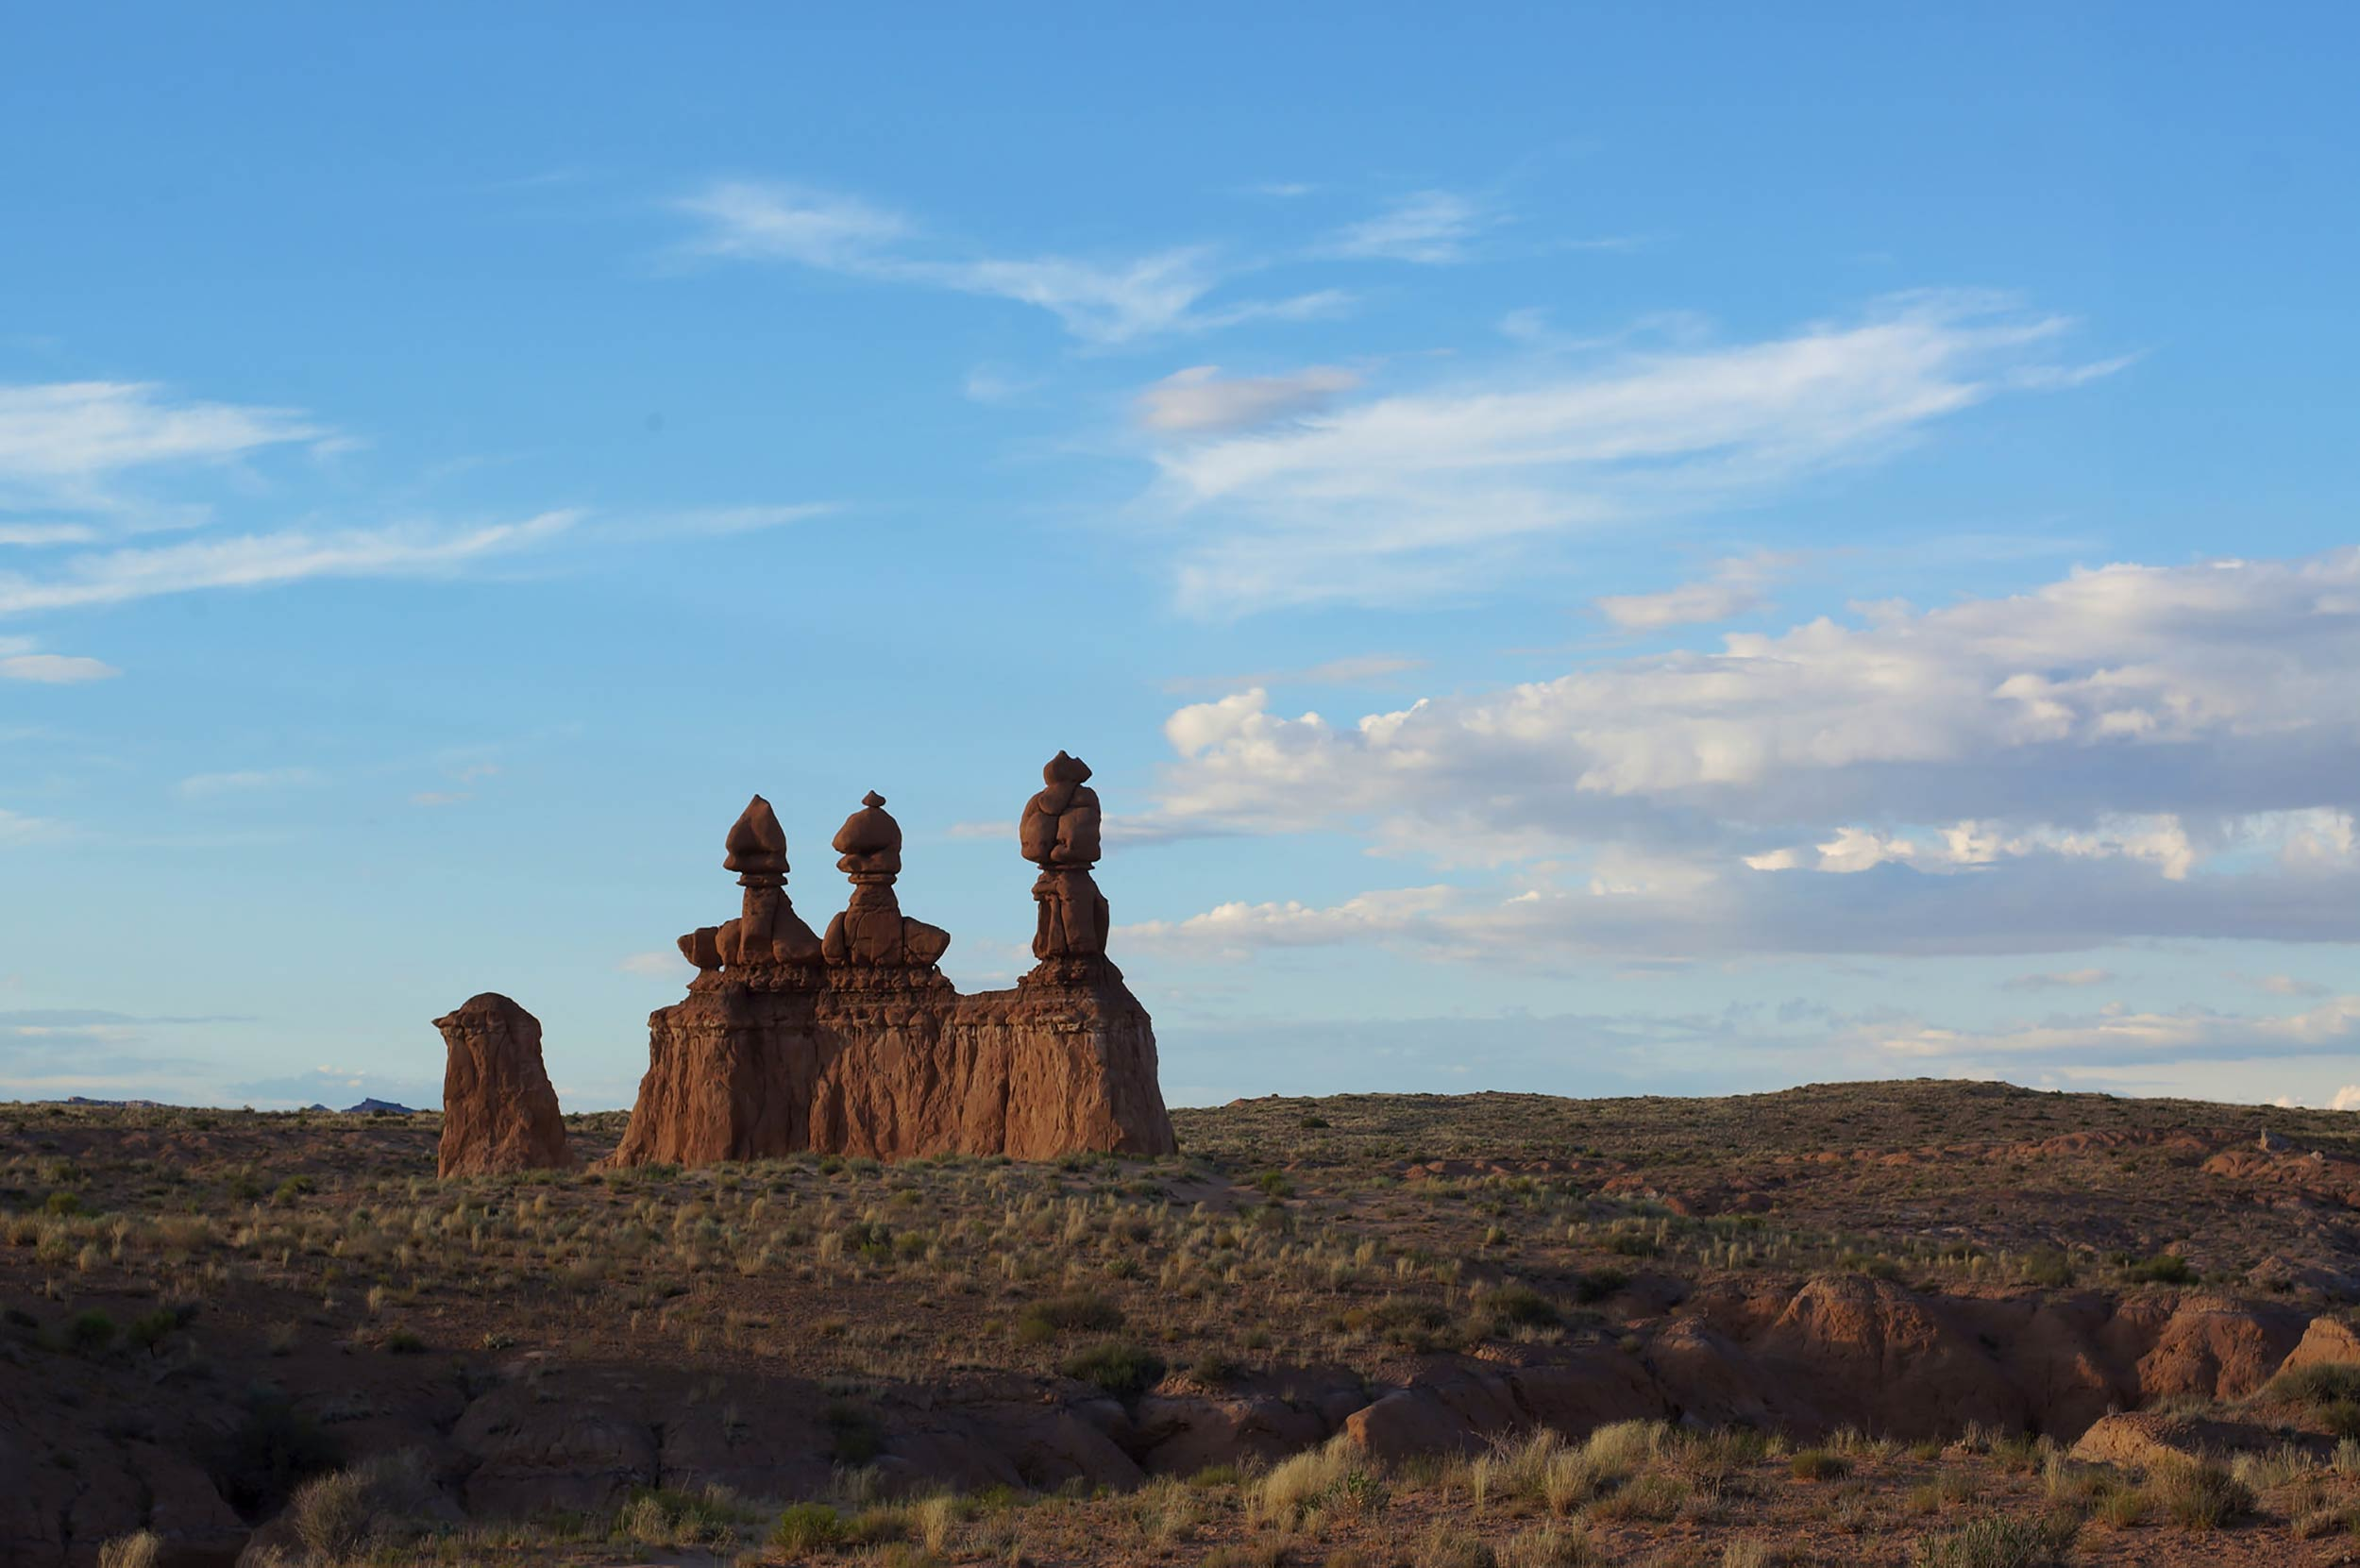 arches_np_driving2.jpg